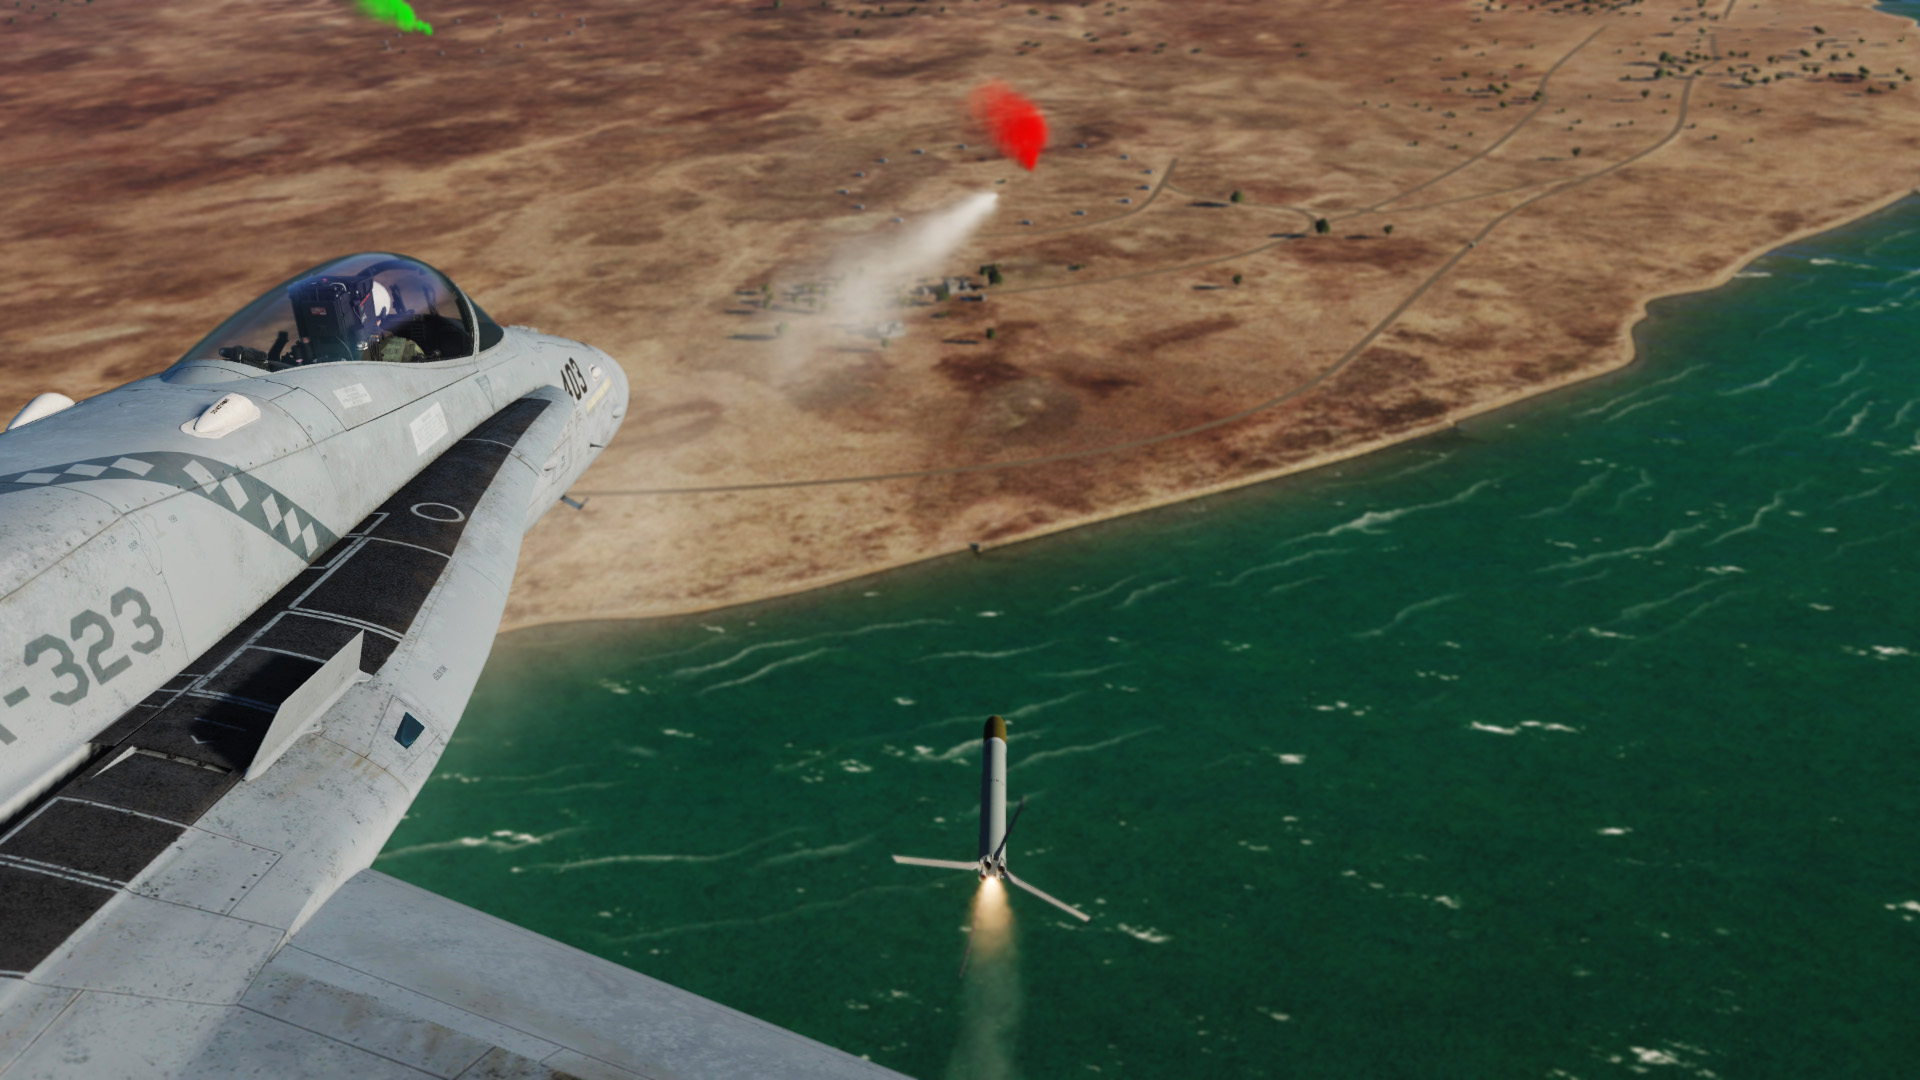 Launch, image from kaltokri, in common